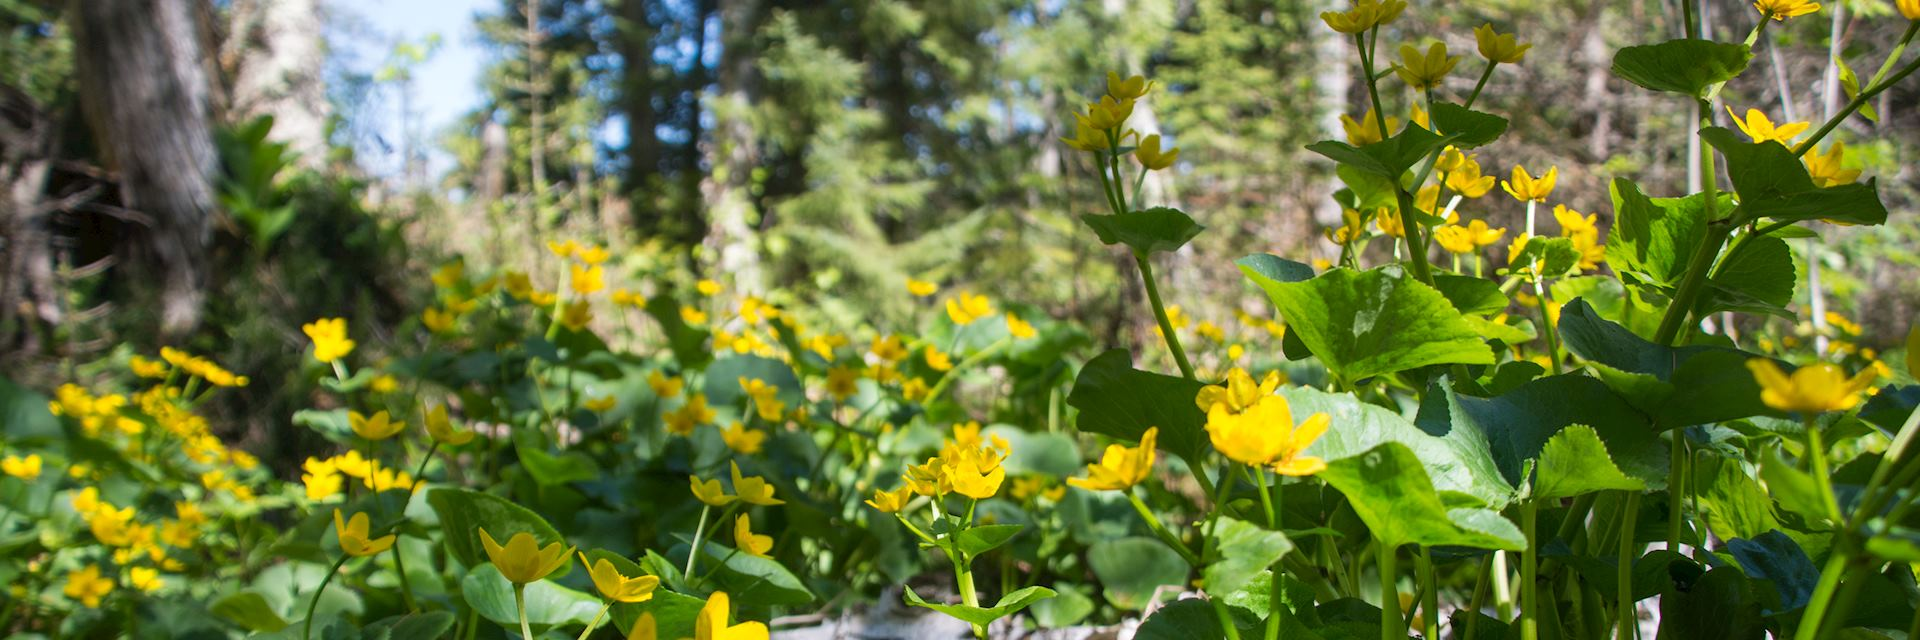 Flowers in Isle Royale National Park